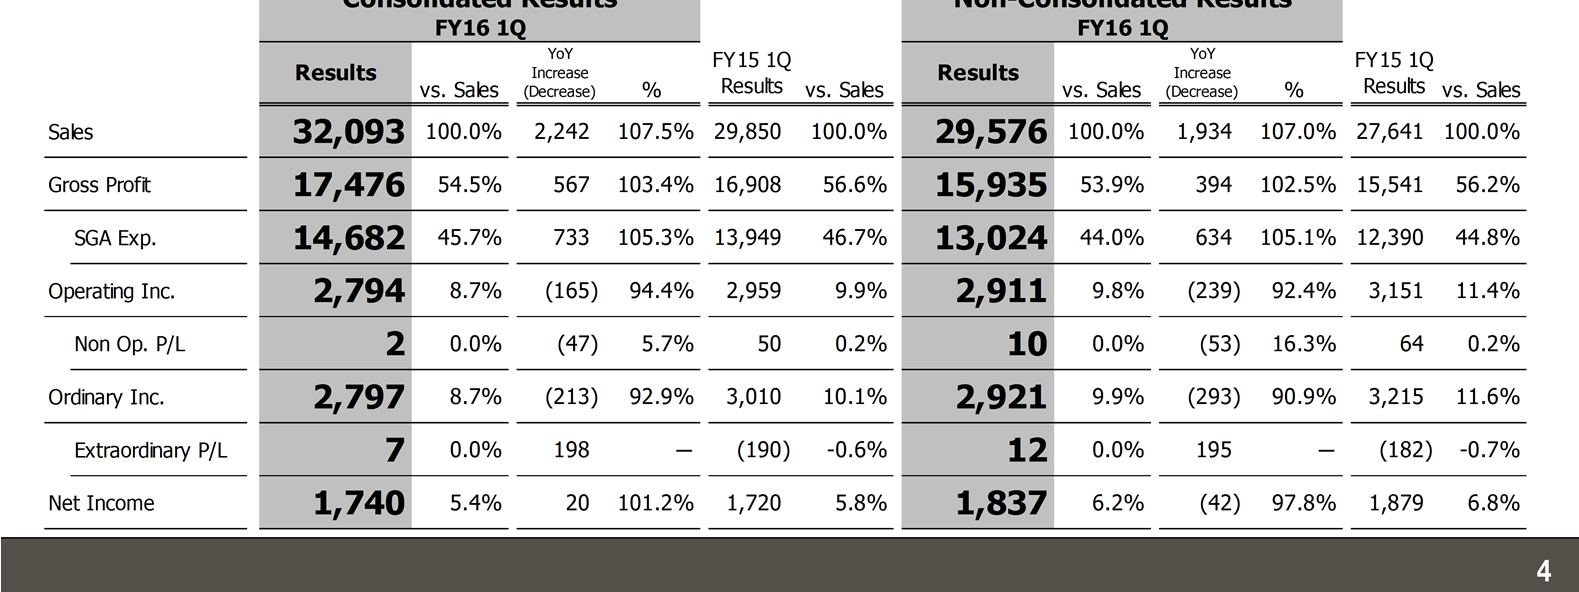 Consolidated / Non-Consolidated 1Q P/L Overview While revenue was up and earnings were down for the 1Q (April 1, 2015 to June 30, 2015) of FY16, the fiscal year ending March 31, 2016, results were